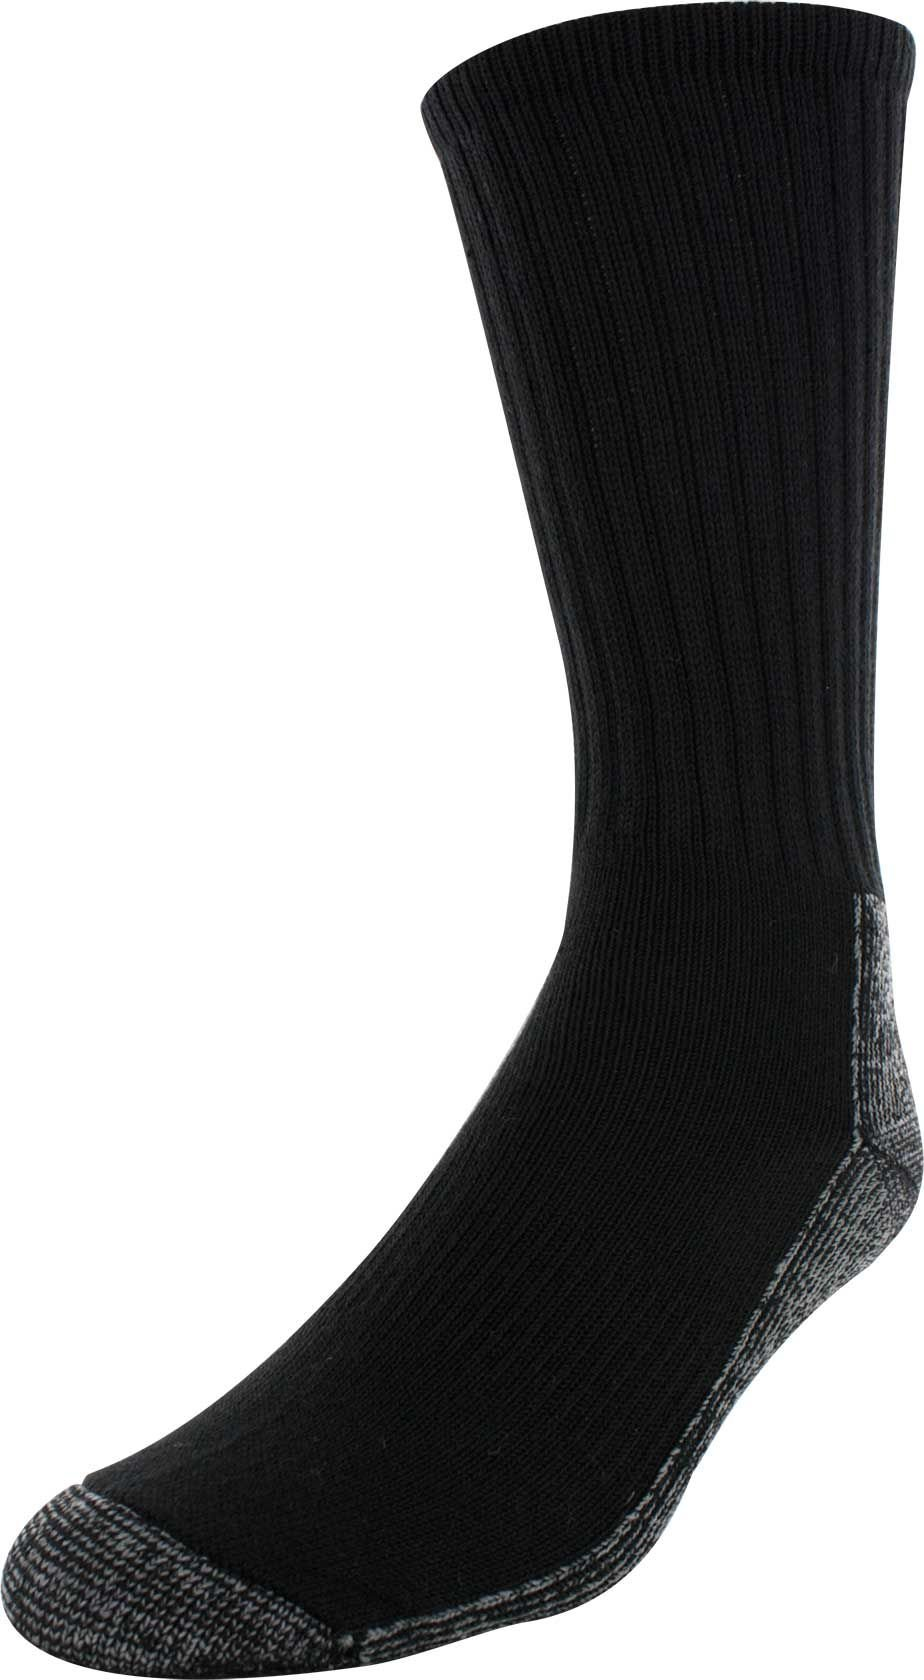 Field & Stream Iron Mill Work Crew Socks 3 Pack (Black, XL)